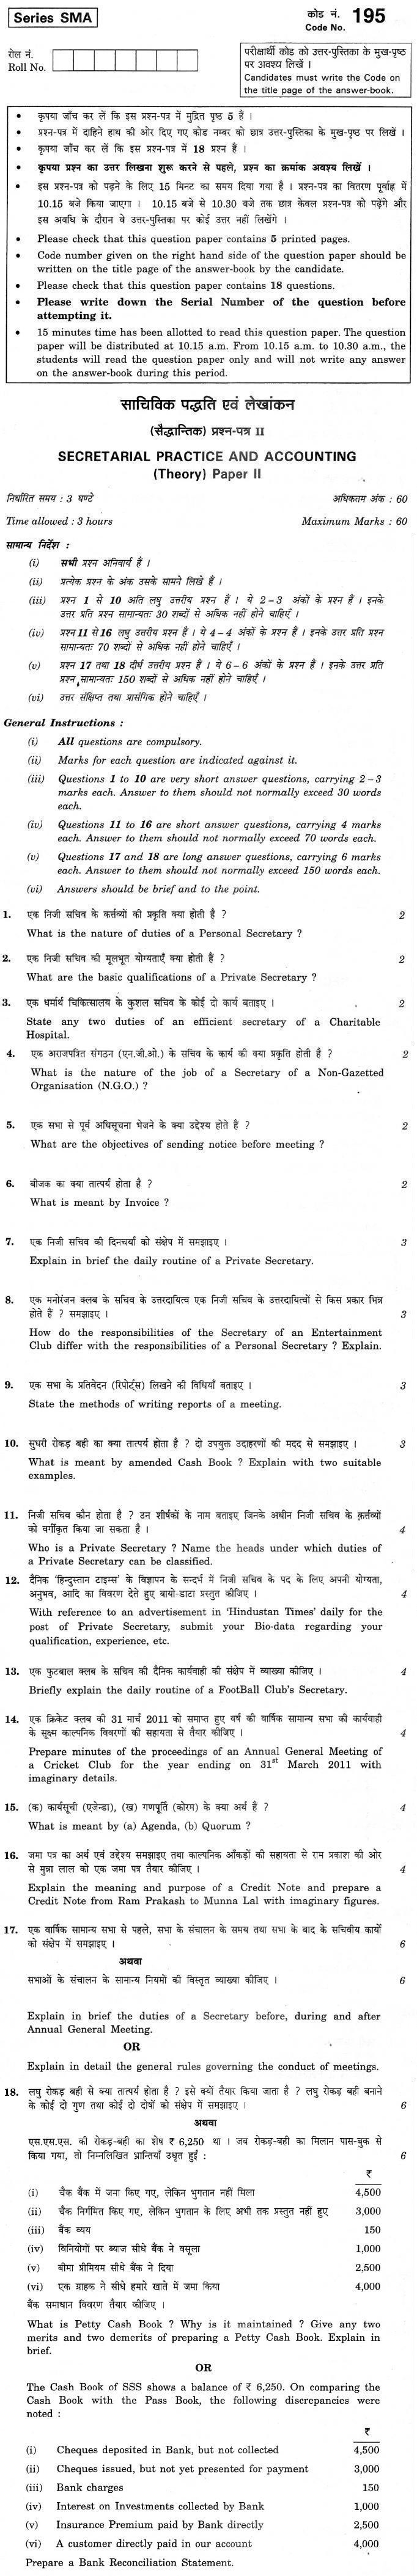 CBSE Class XII Previous Year Question Paper 2012 Secretarial Practice and Accounting Paper II